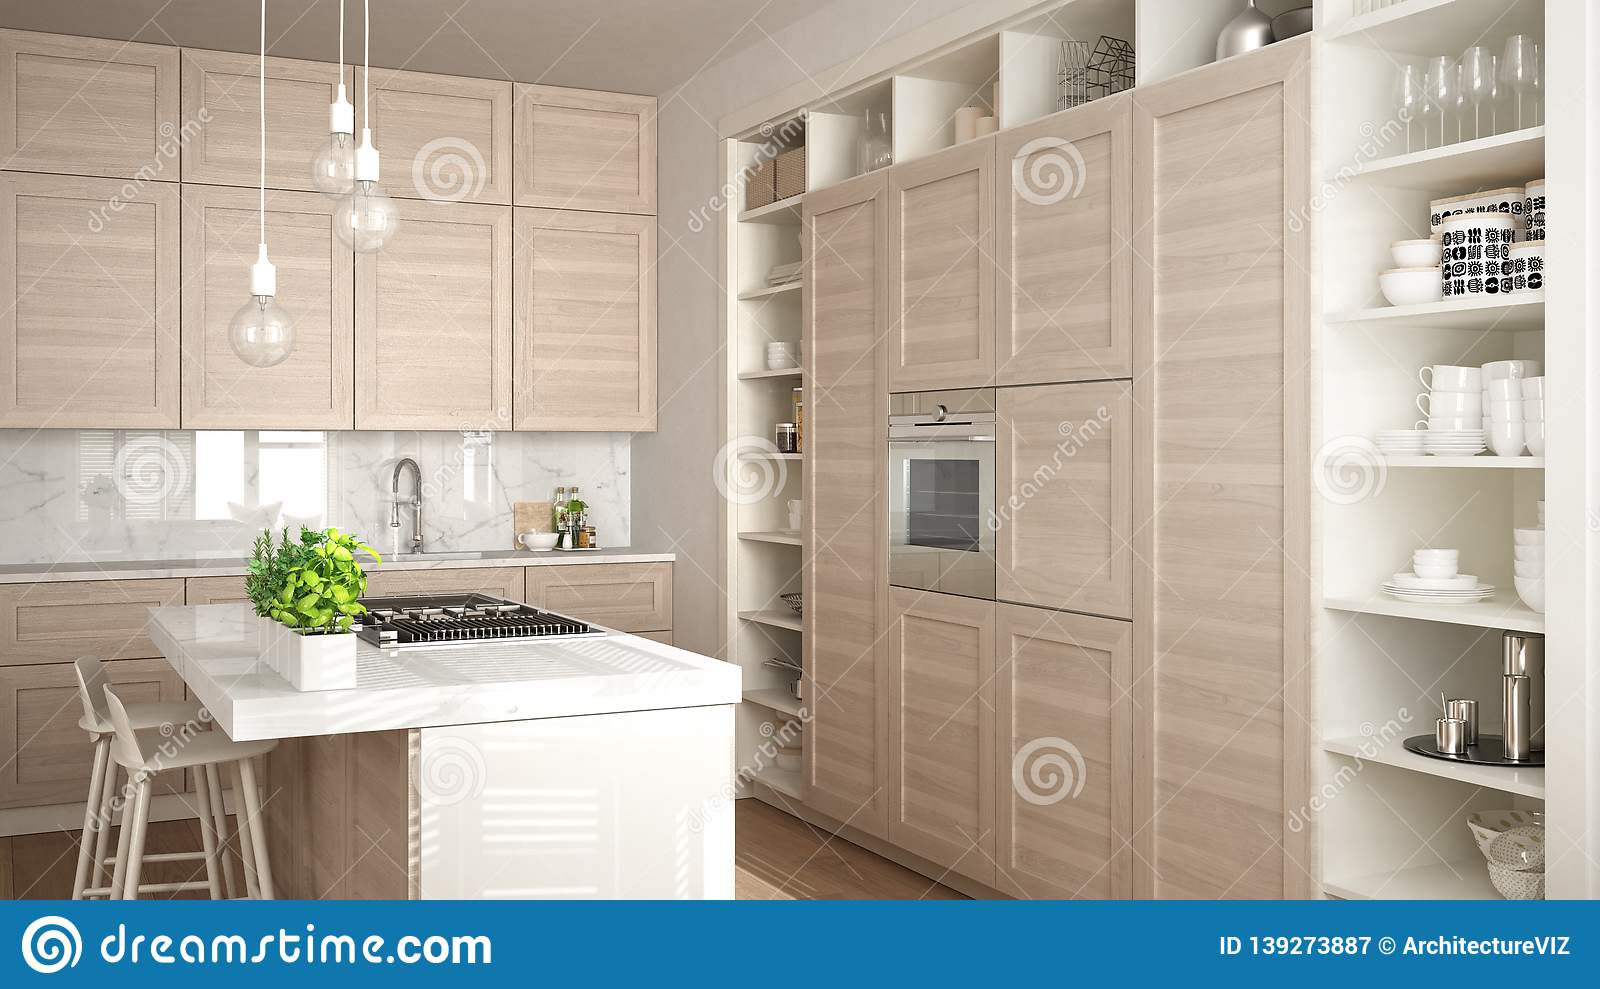 Modern White Kitchen With Wooden Details In Contemporary